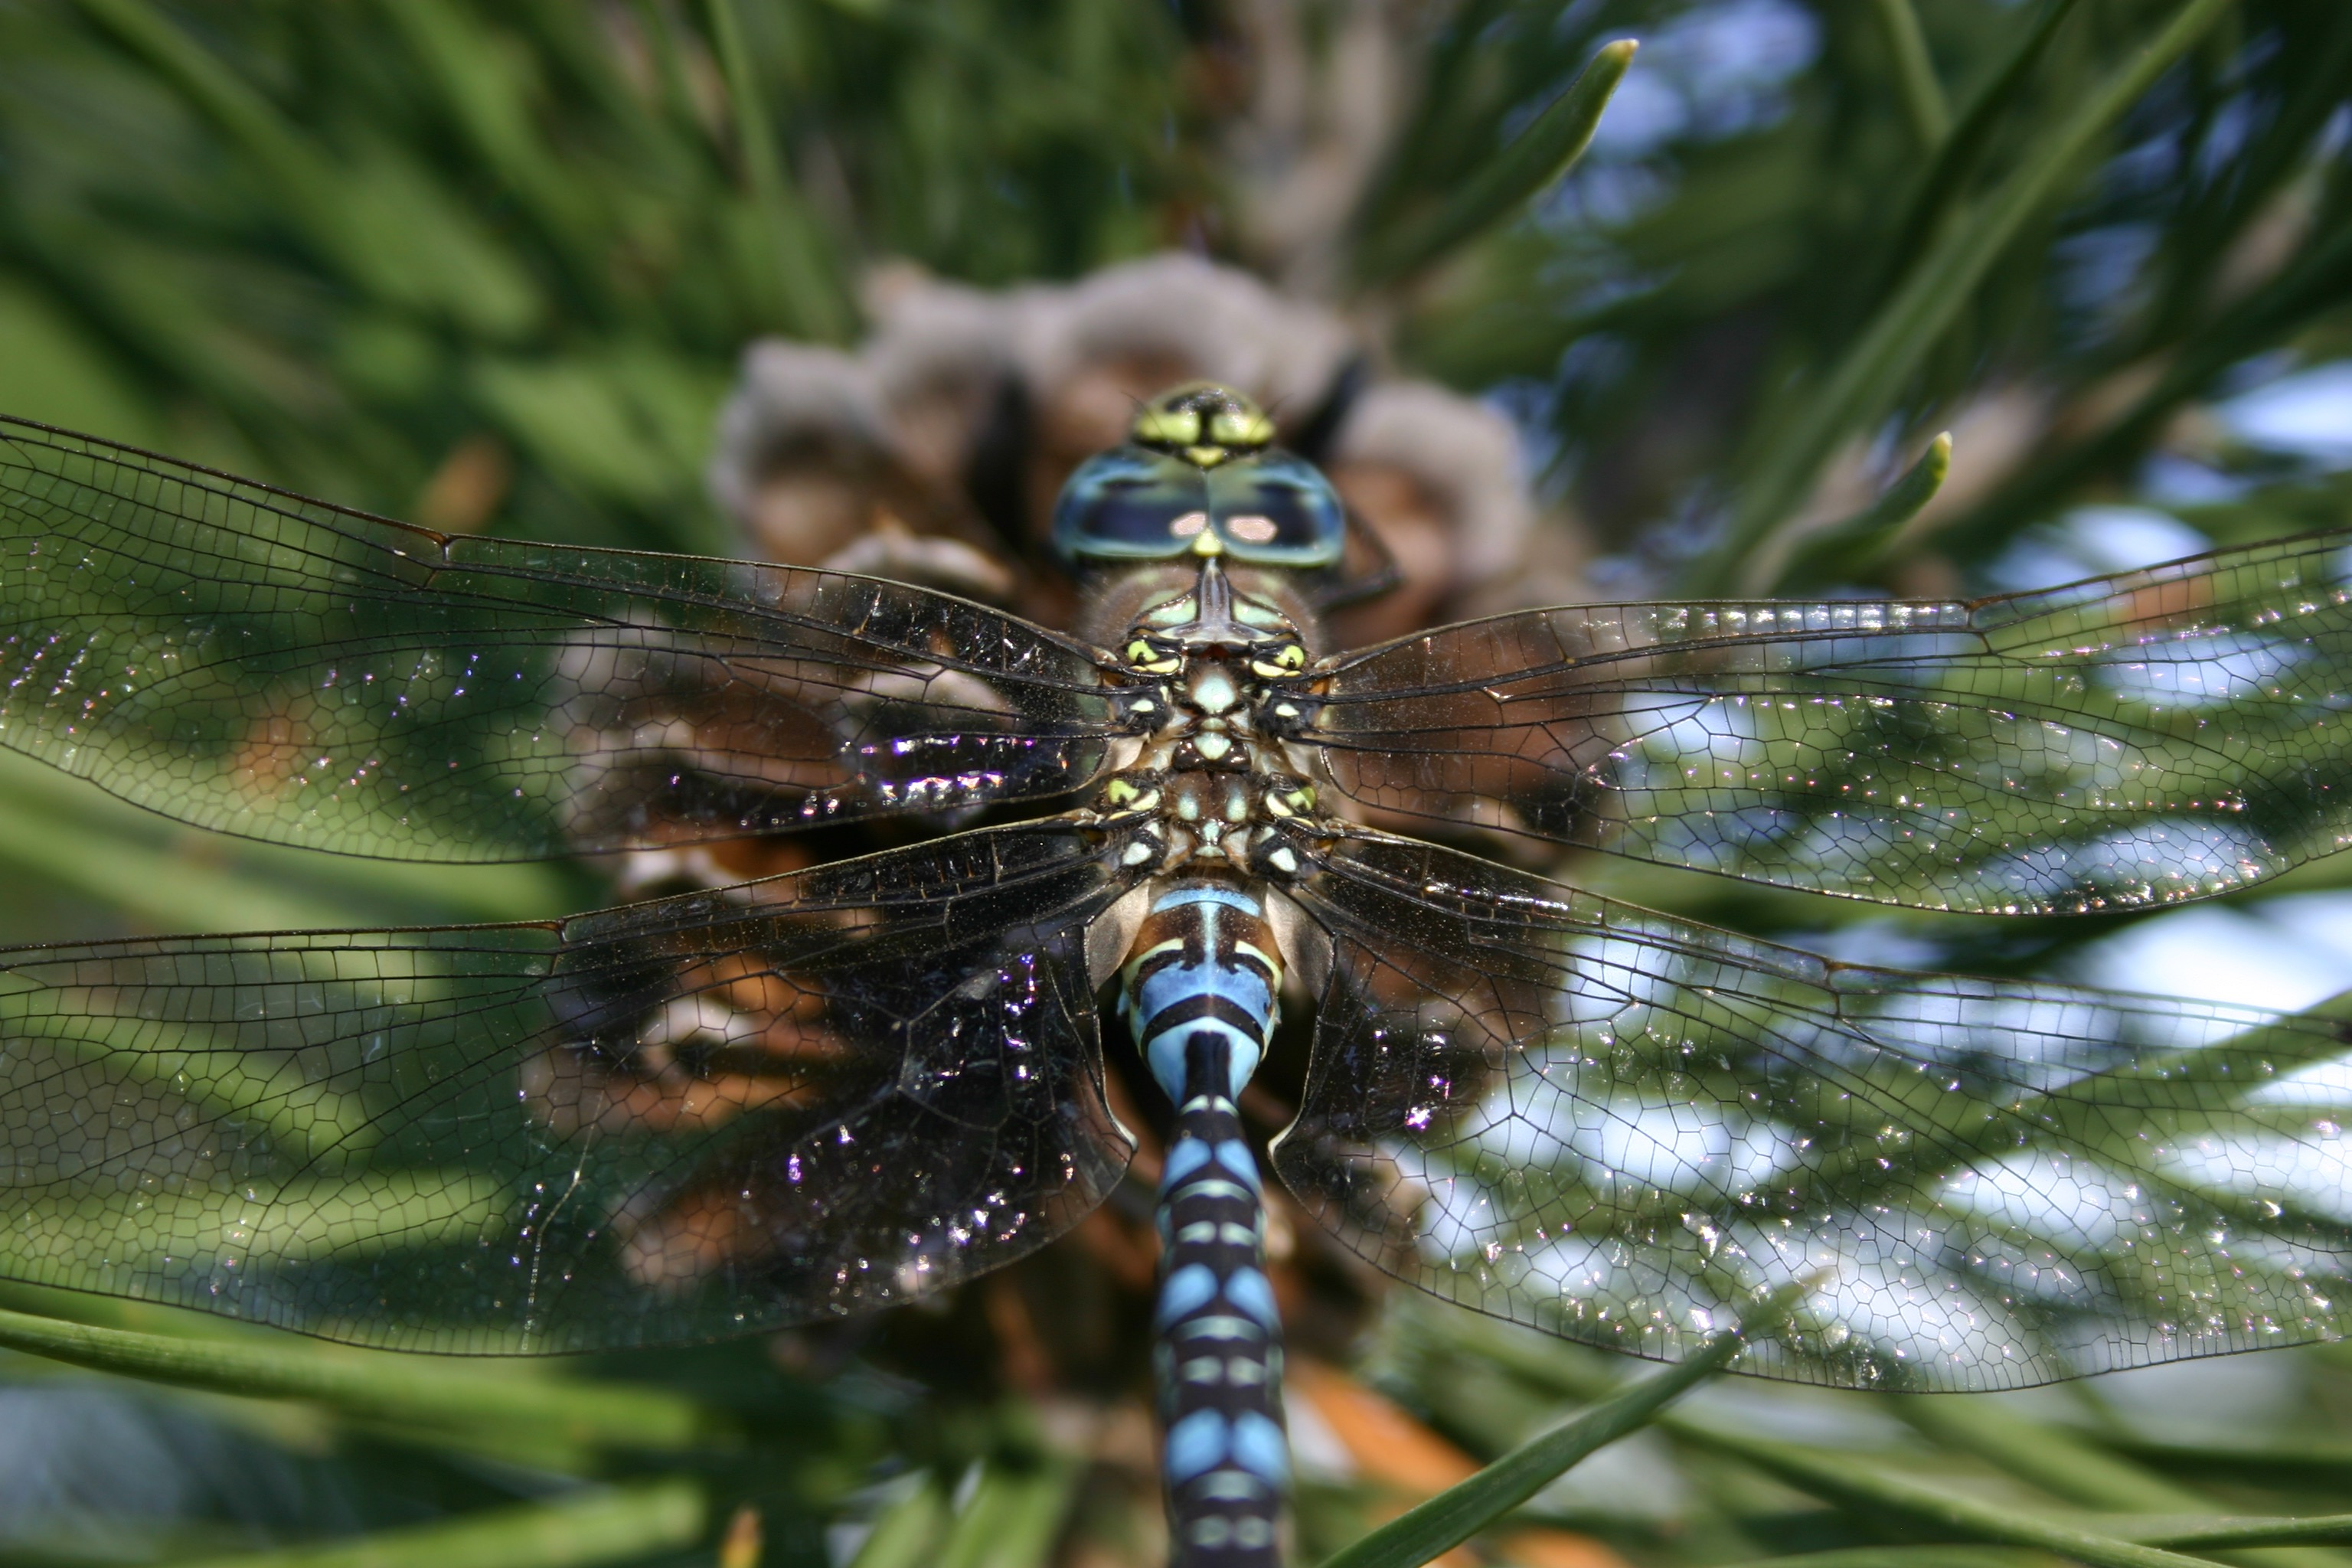 Closeup of a blue dragonfly on a pinecone.